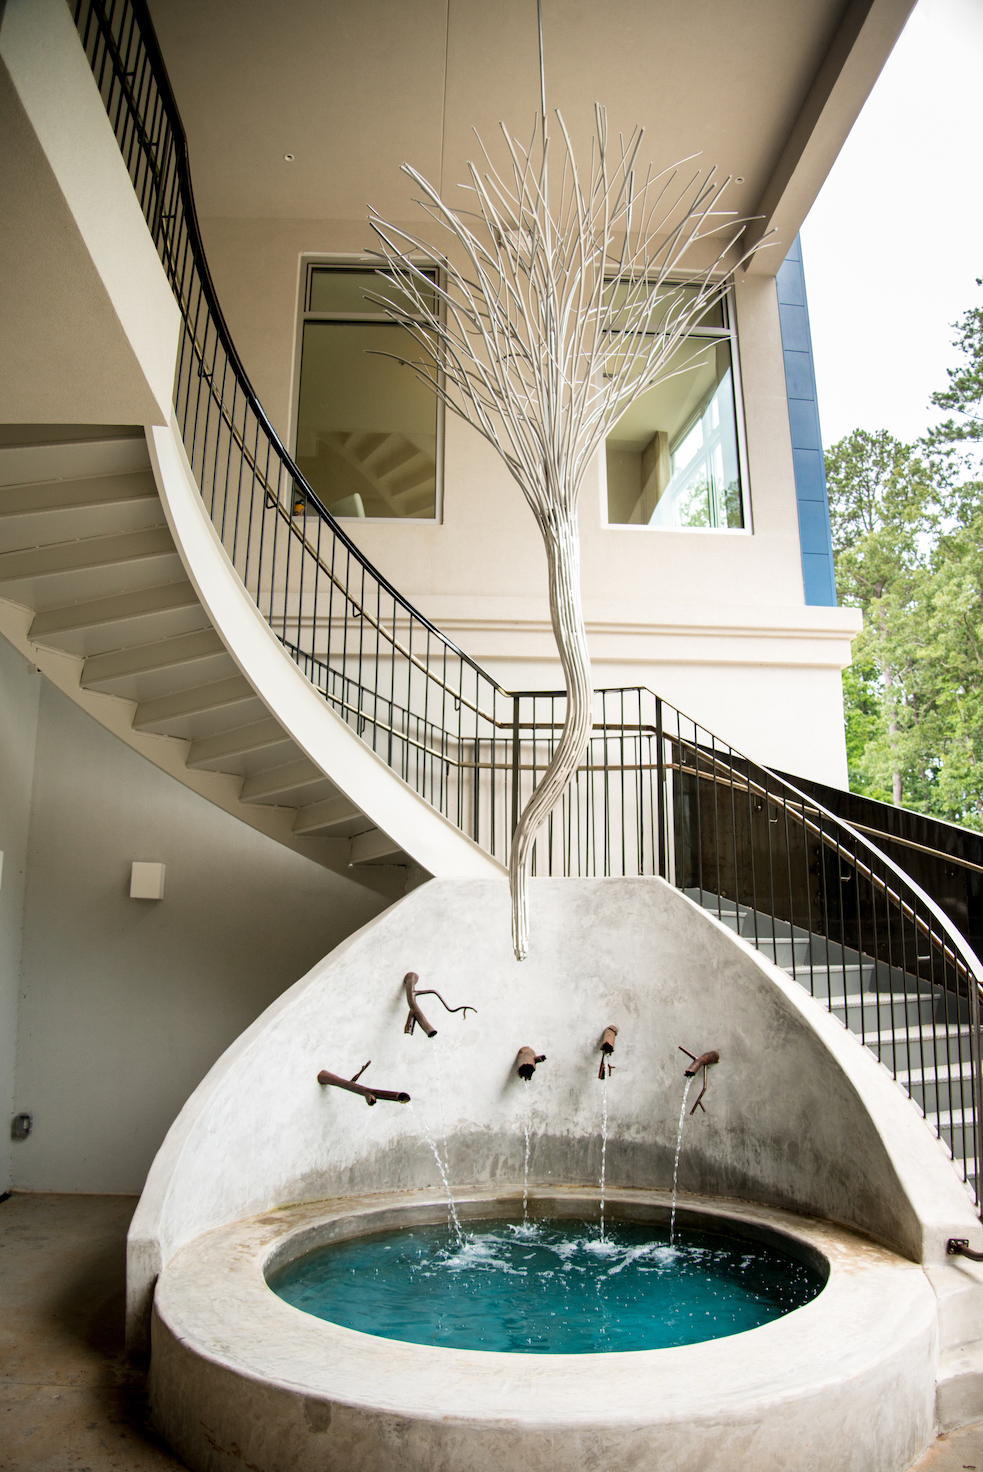 Robert Rausch designed the light fixture that hangs above a fountain alongside the staircase fabricated by Gault Designs. Photo by Mia Yakel.